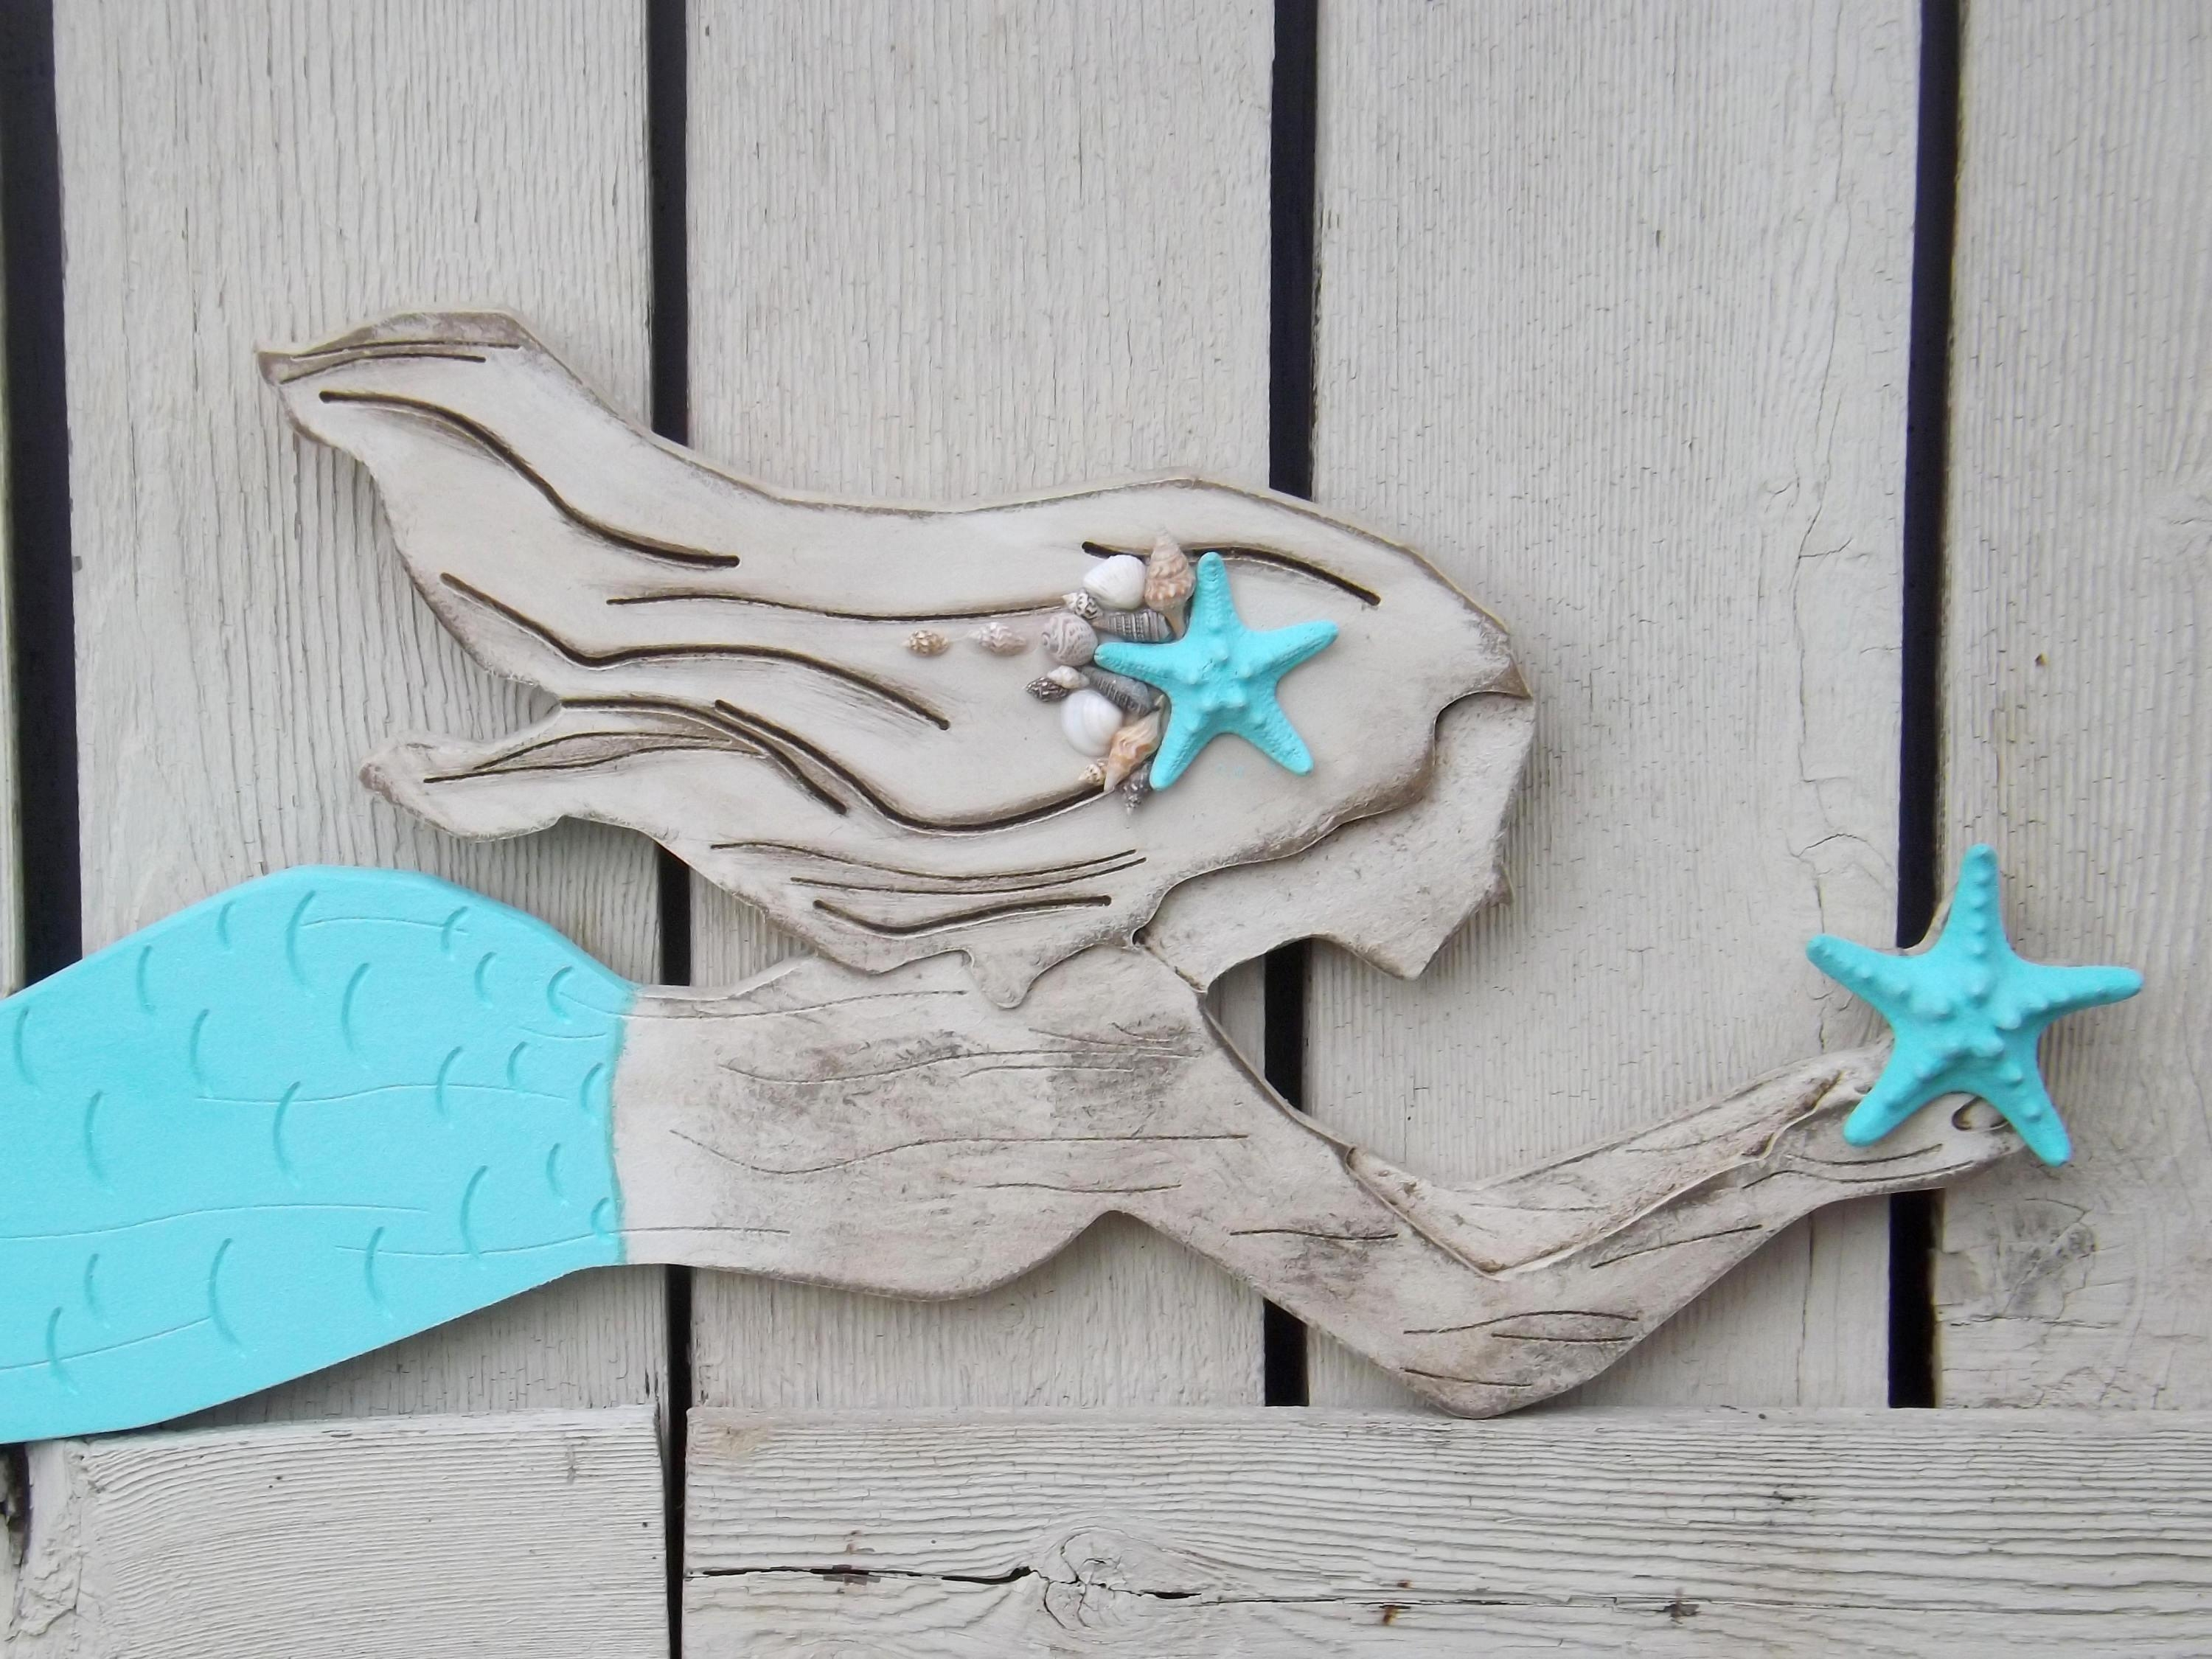 Wood Mermaid Wall Decor X Large Mermaid Mermaid Inside Mermaid Wood Wall Art (View 6 of 20)